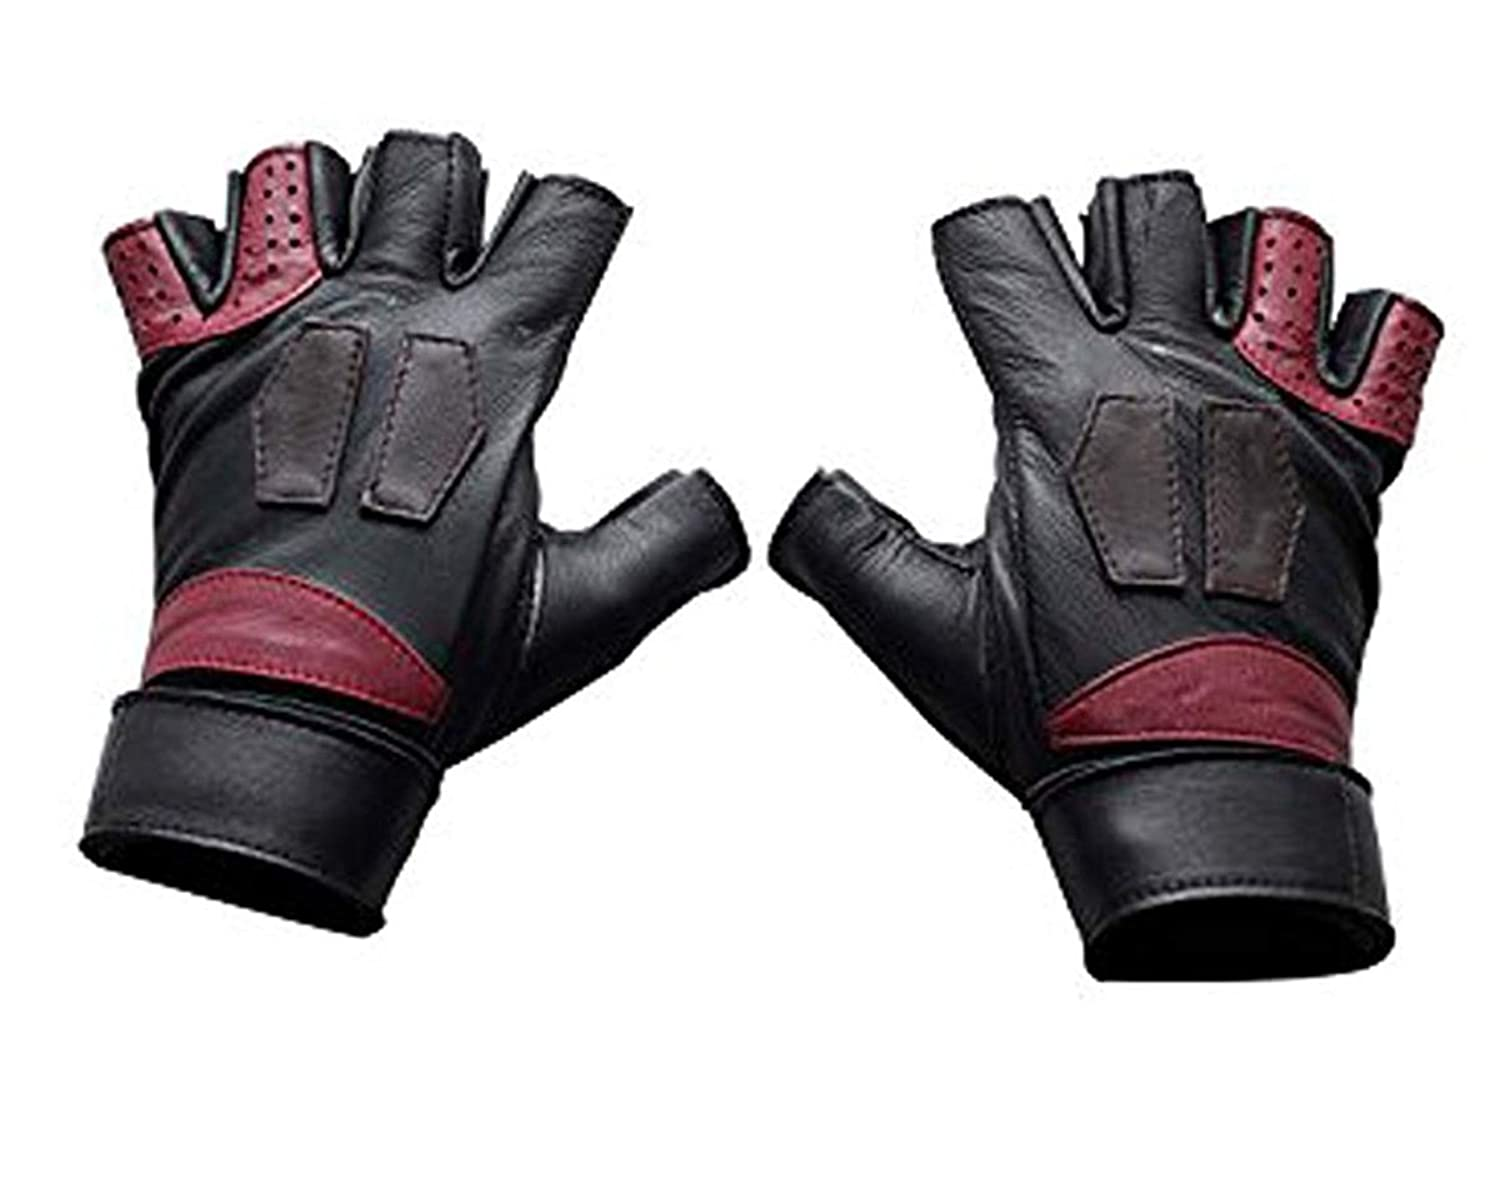 Guardians of the Galaxy Vol 2 Star-Lord Black Leather Costume Gloves